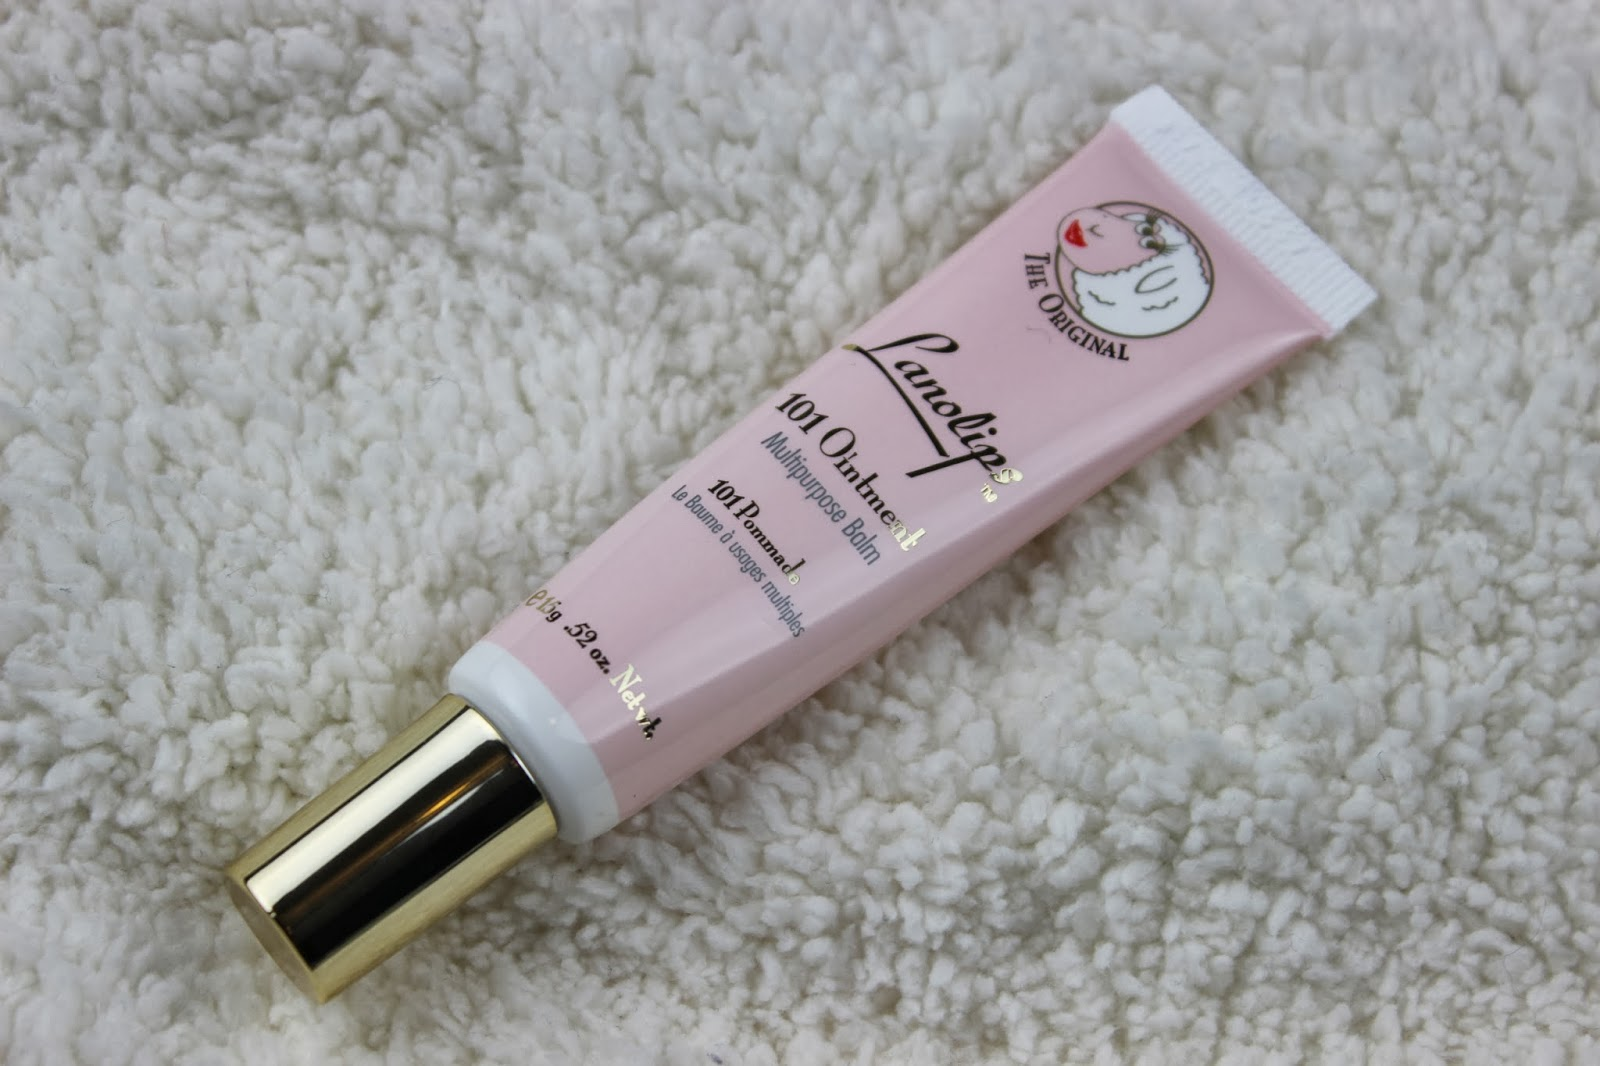 Lanolips | 101 Ointment Multipurpose Balm